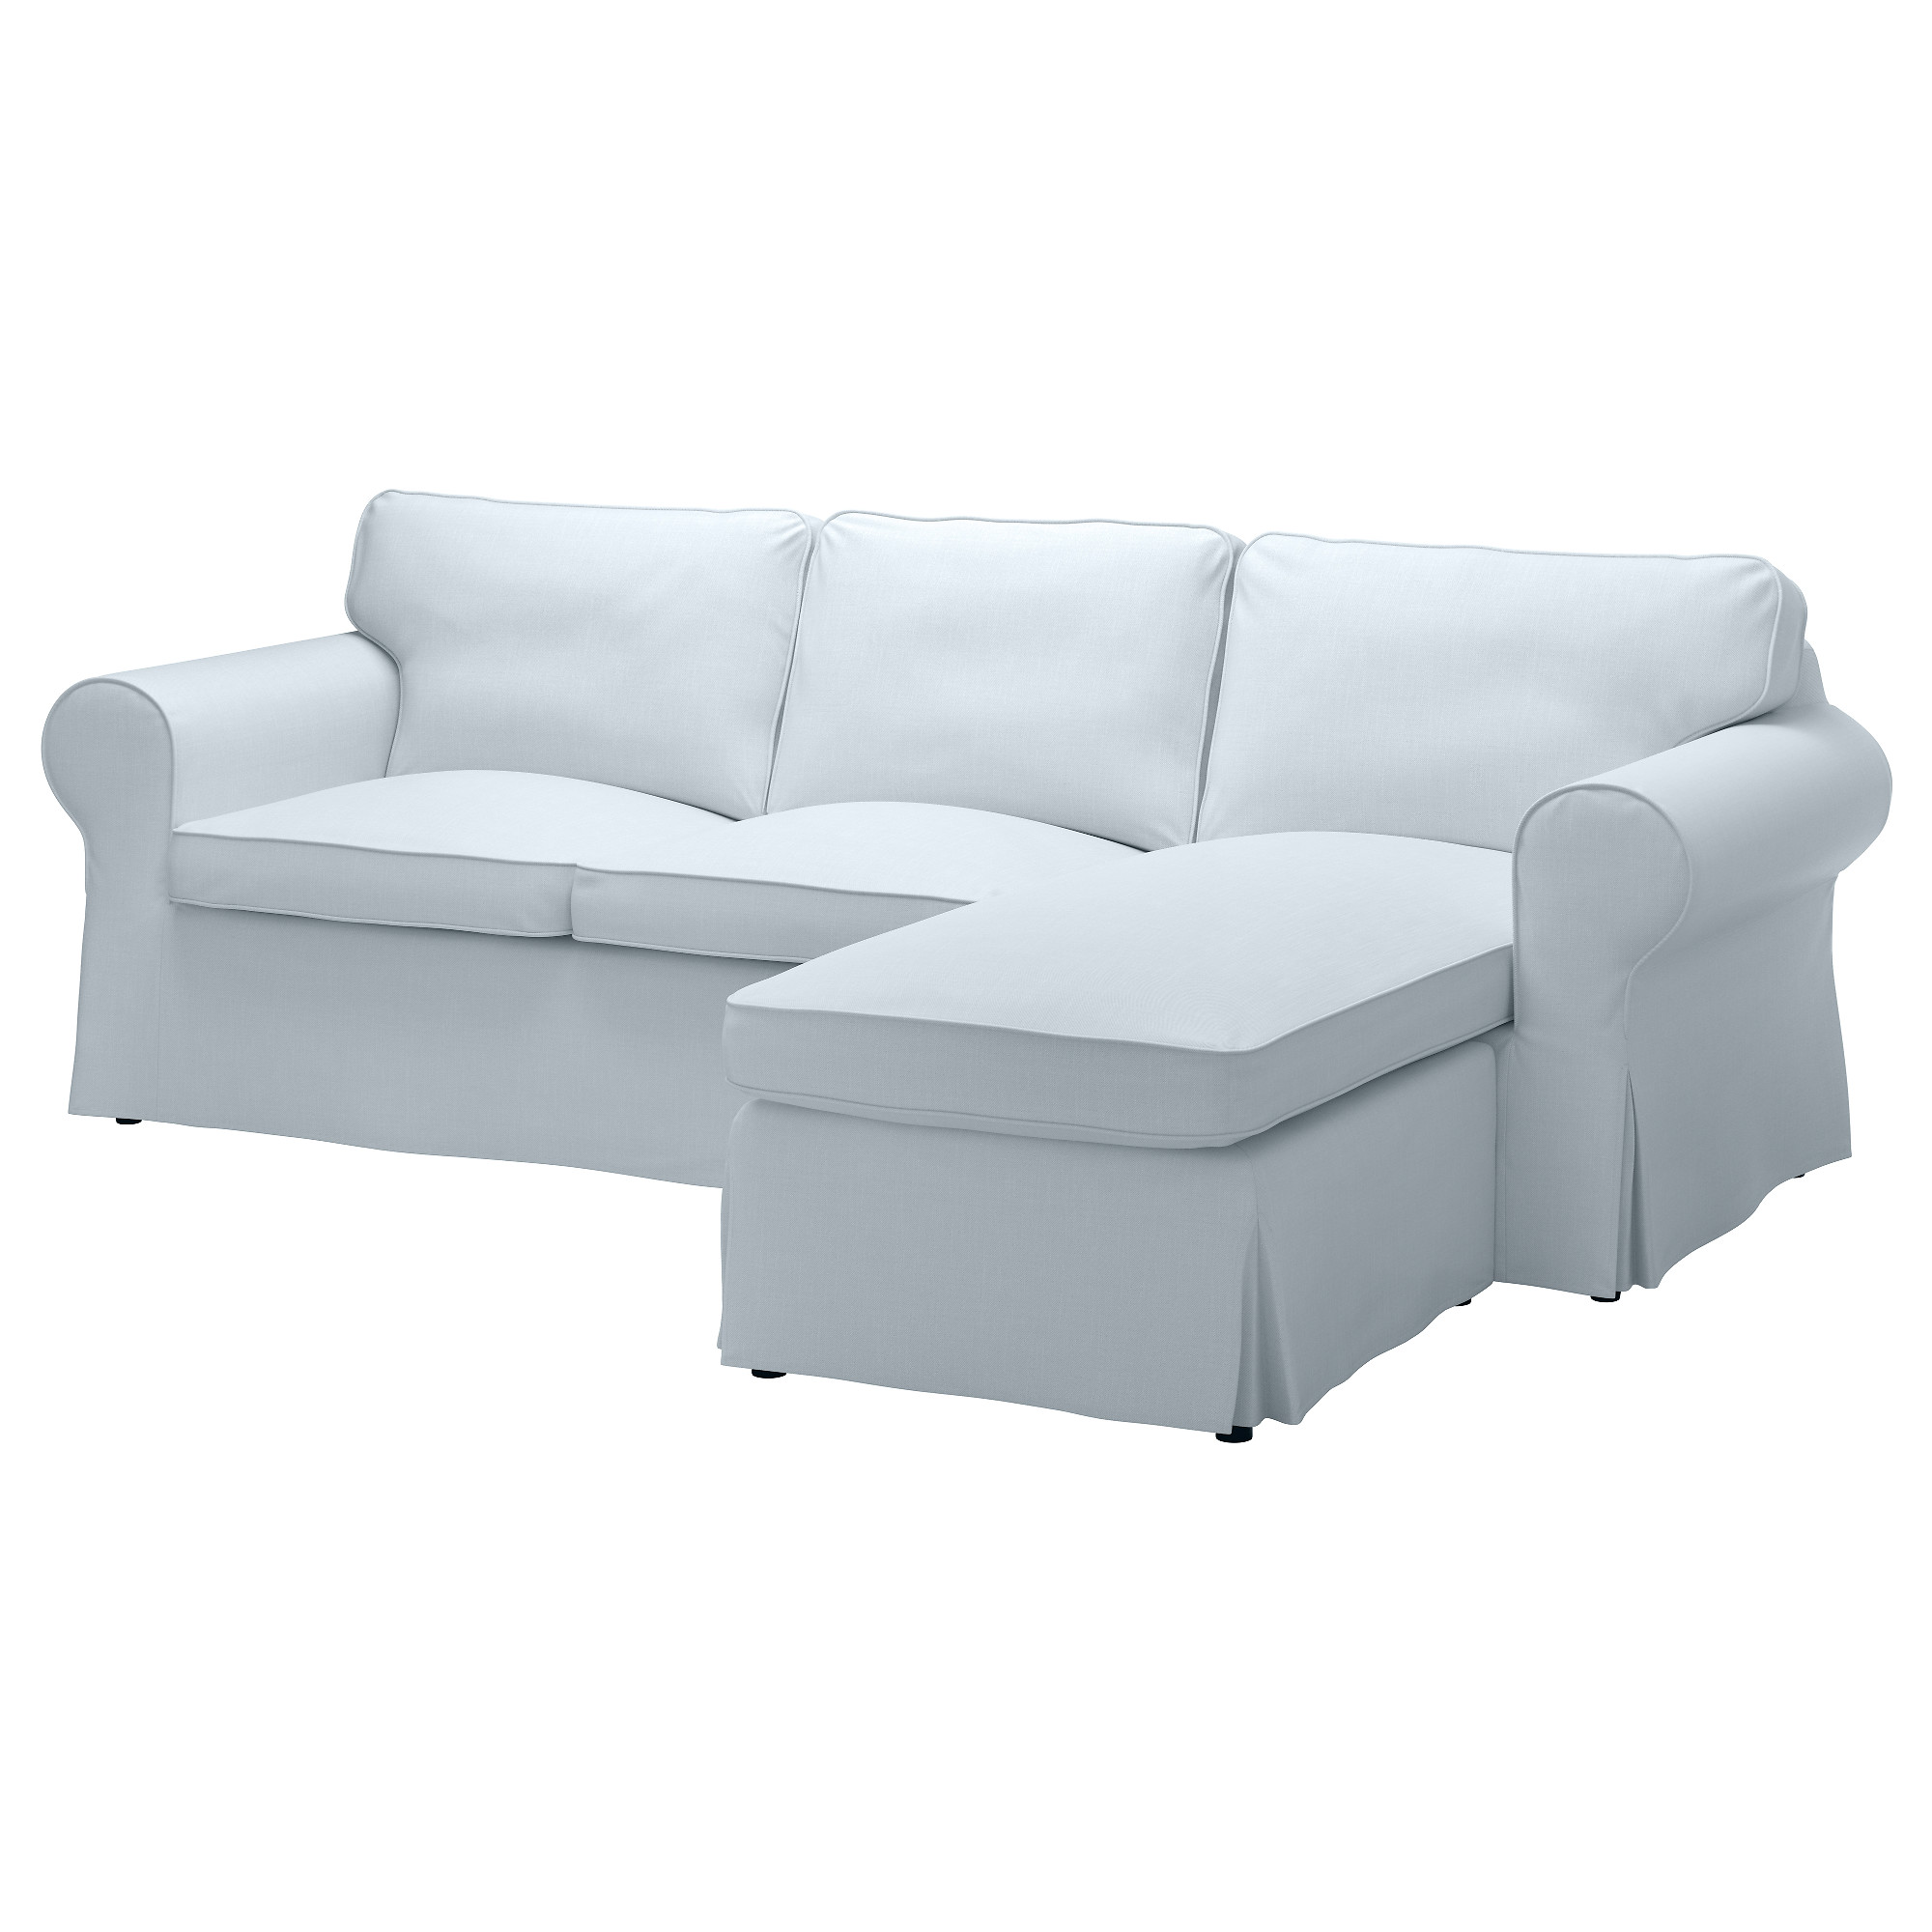 spaces chaise size photo of sectional with dorel living ideas full multiple loungesmall couch sofas configurable and contemporarysmall ideasal sofa frightening small couches lovely